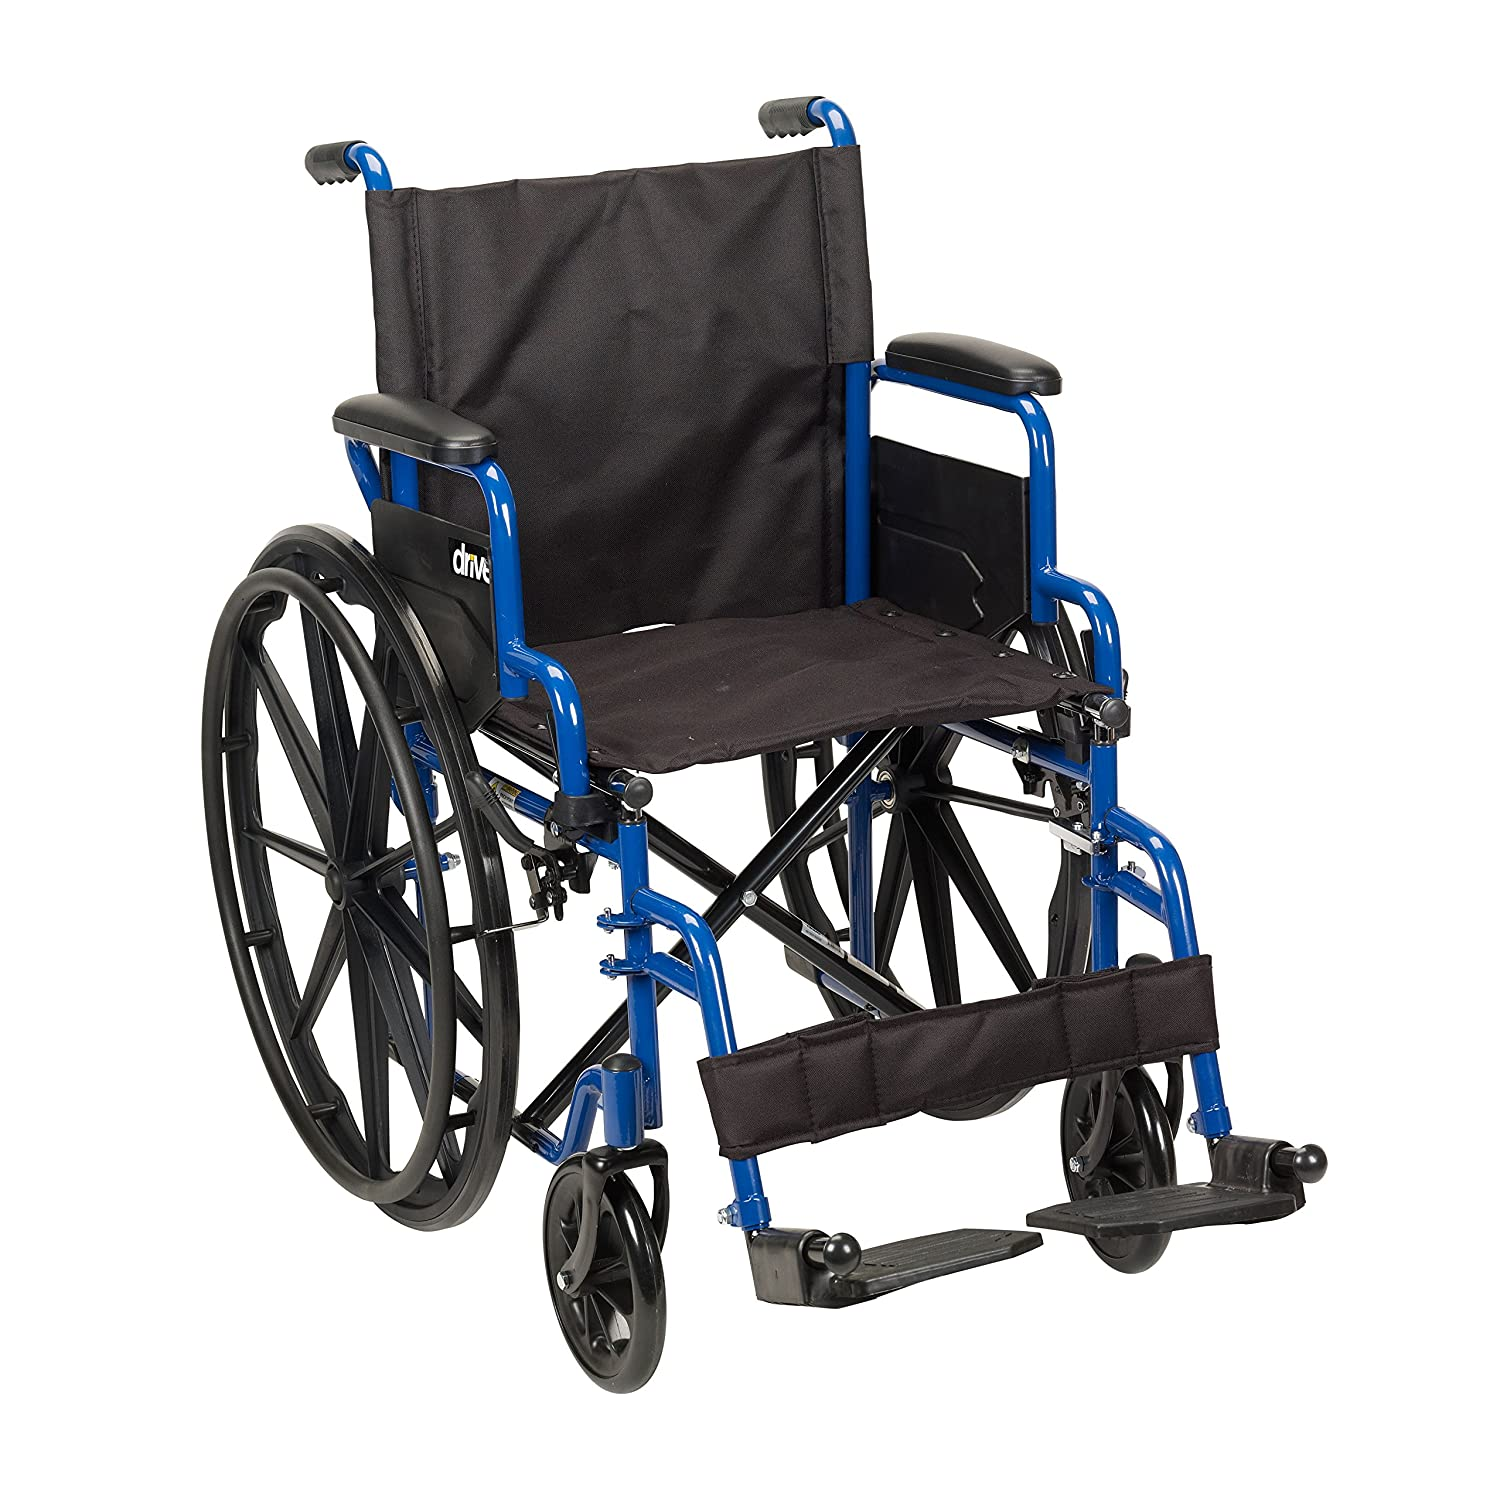 Drive Medical Blue Streak Wheelchair with Flip Back Desk Arms, Swing Away Footrests, 18 Inch Seat 9119zW6SD4L